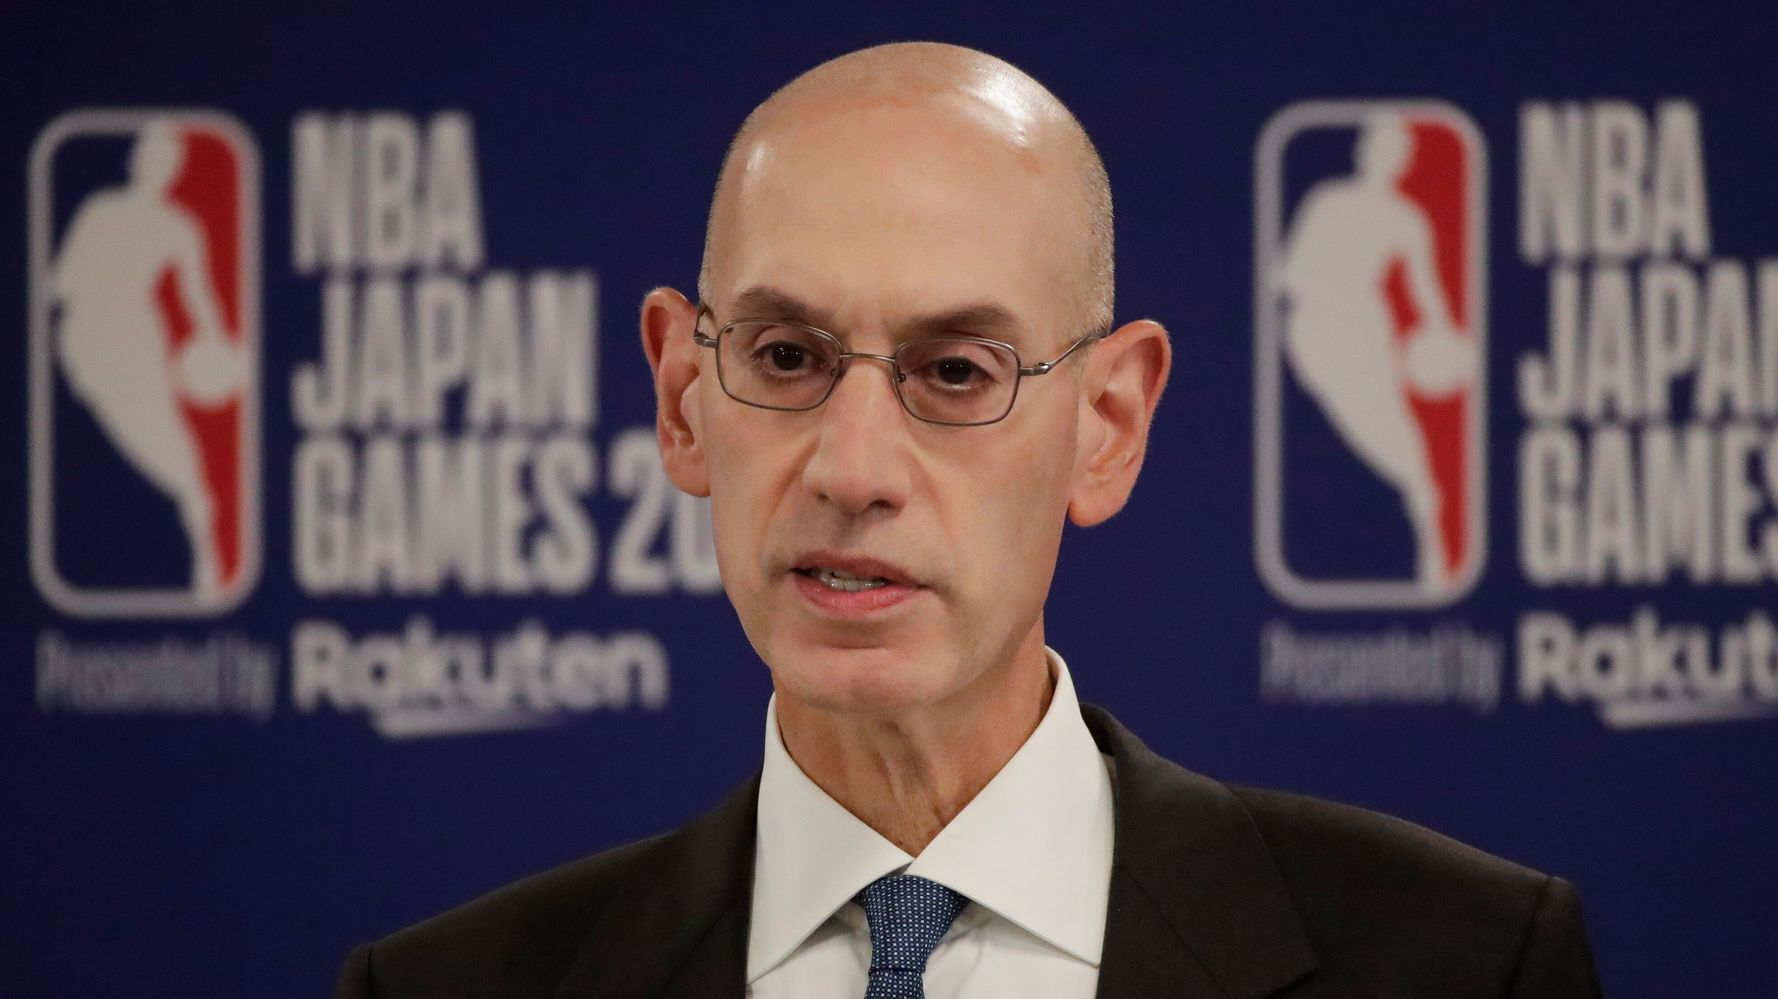 Westlake Legal Group 5d9e649320000069054ff206 Bipartisan Group Of Lawmakers Blasts NBA For Caving To China